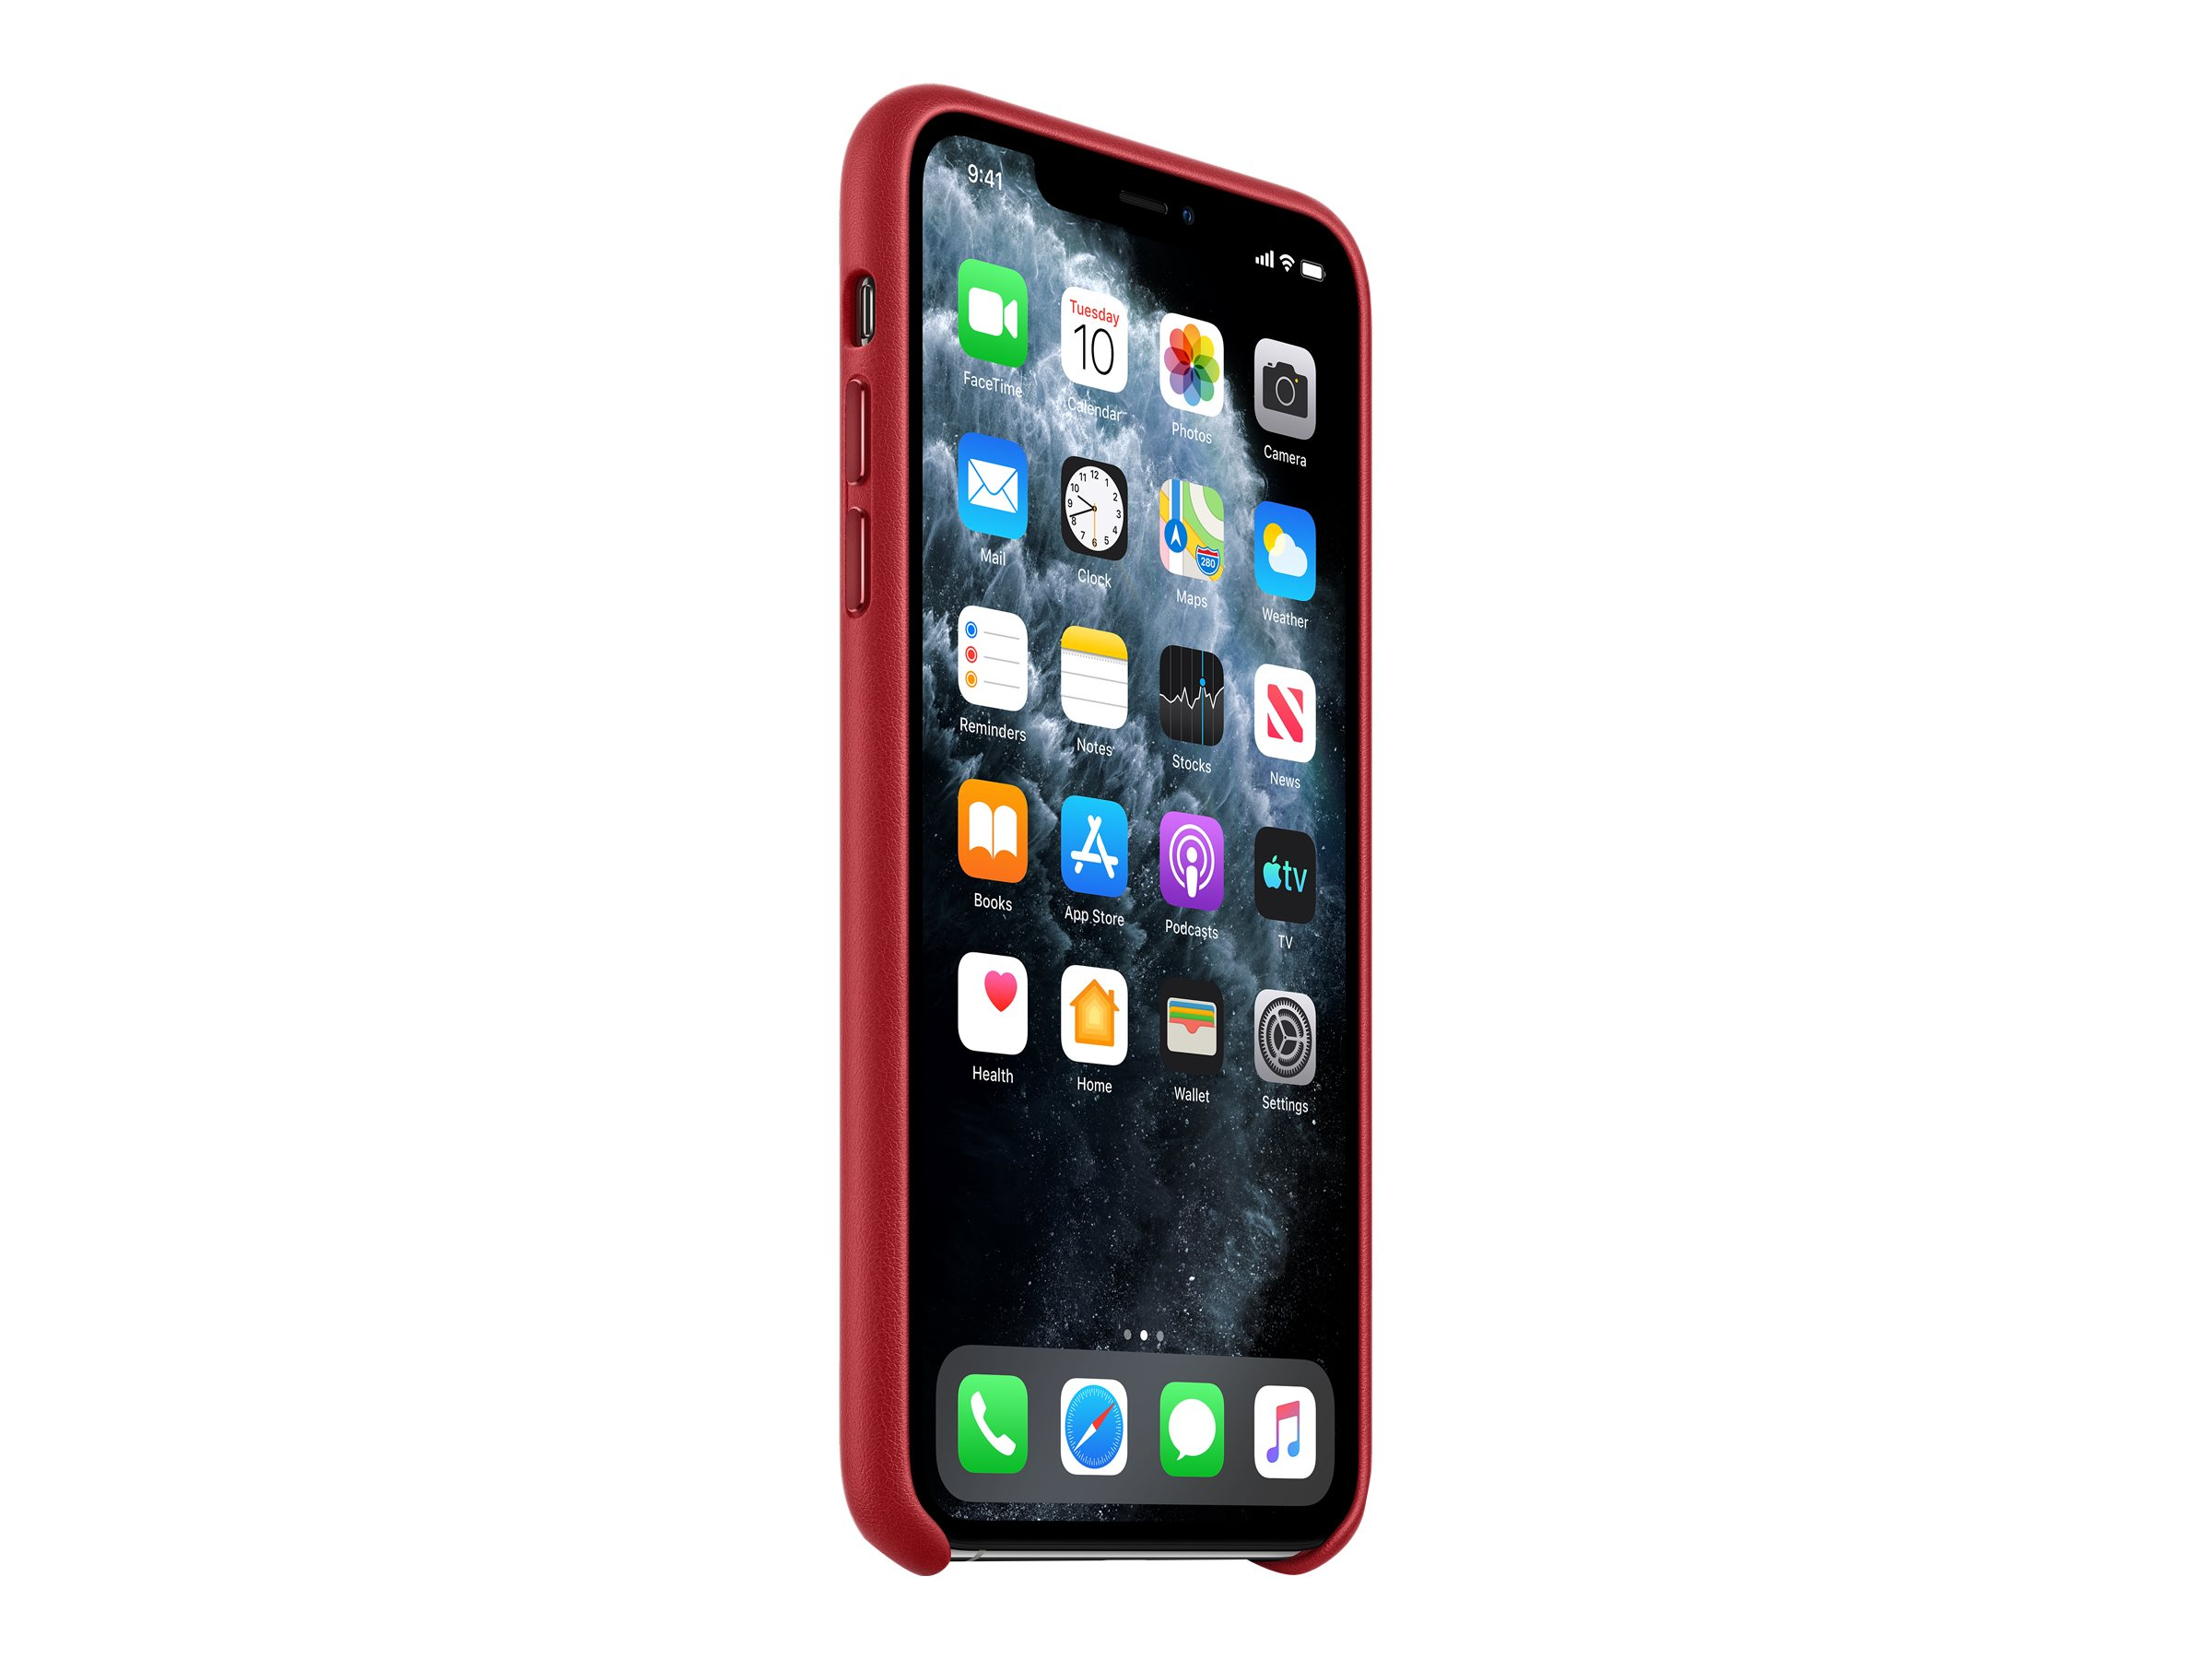 Product red hintere abdeckung fuer mobiltelefon leder rot fuer iphone 11 pro max 11867107 mx0f2zm a